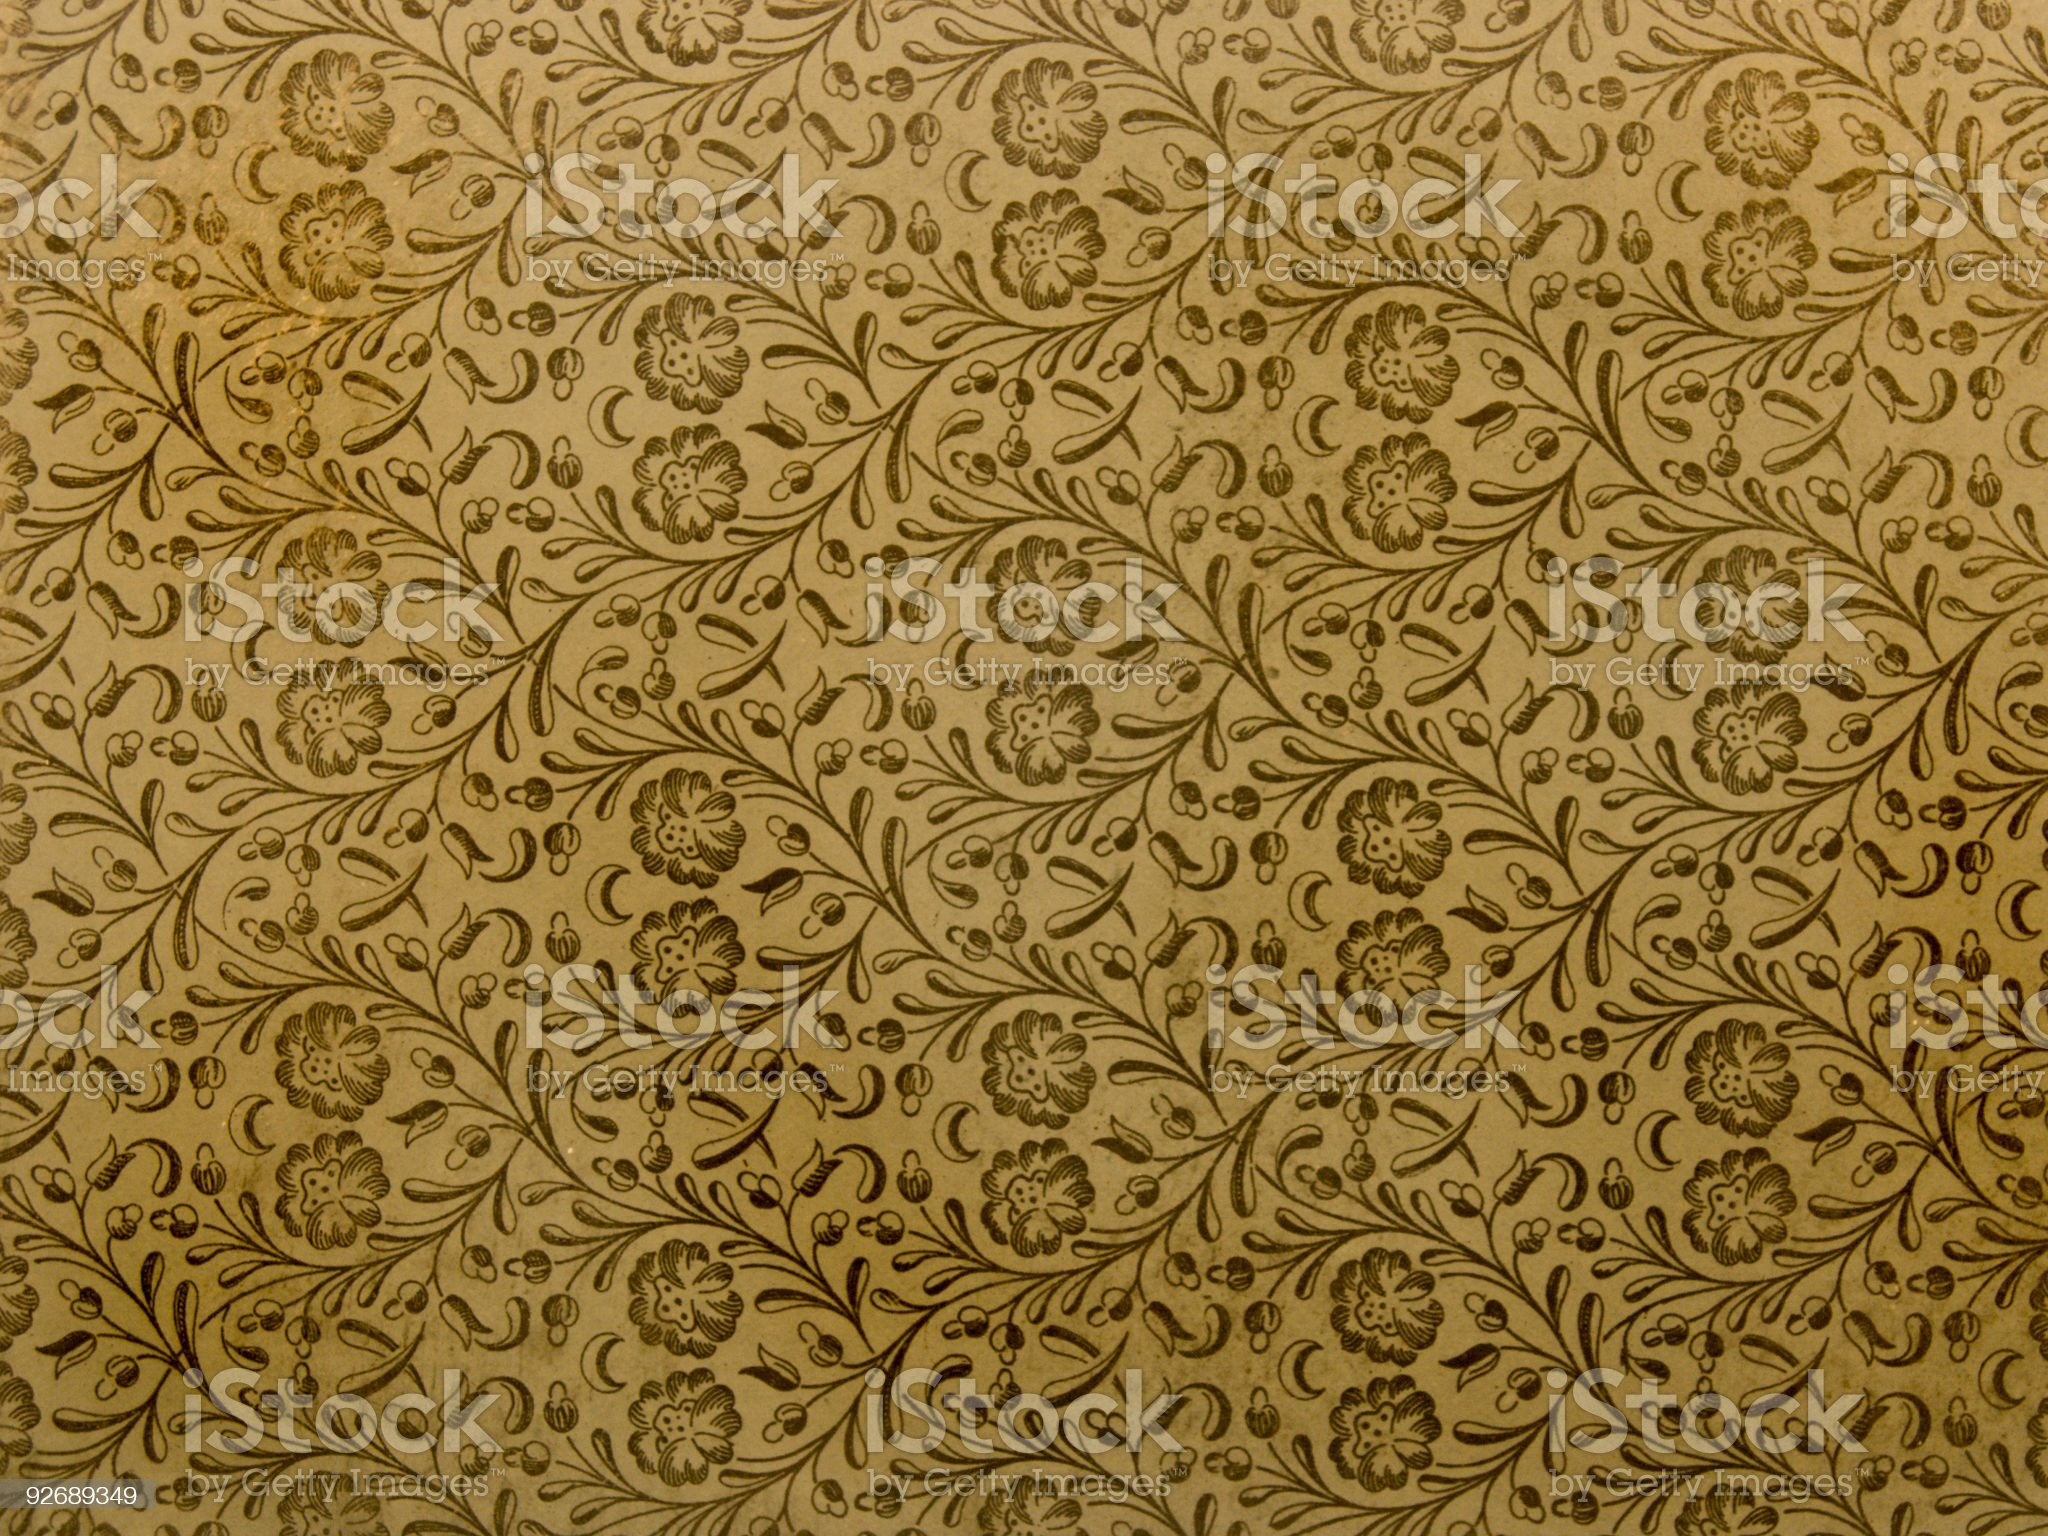 High Resolution Antique Faded Book Paper royalty-free stock photo